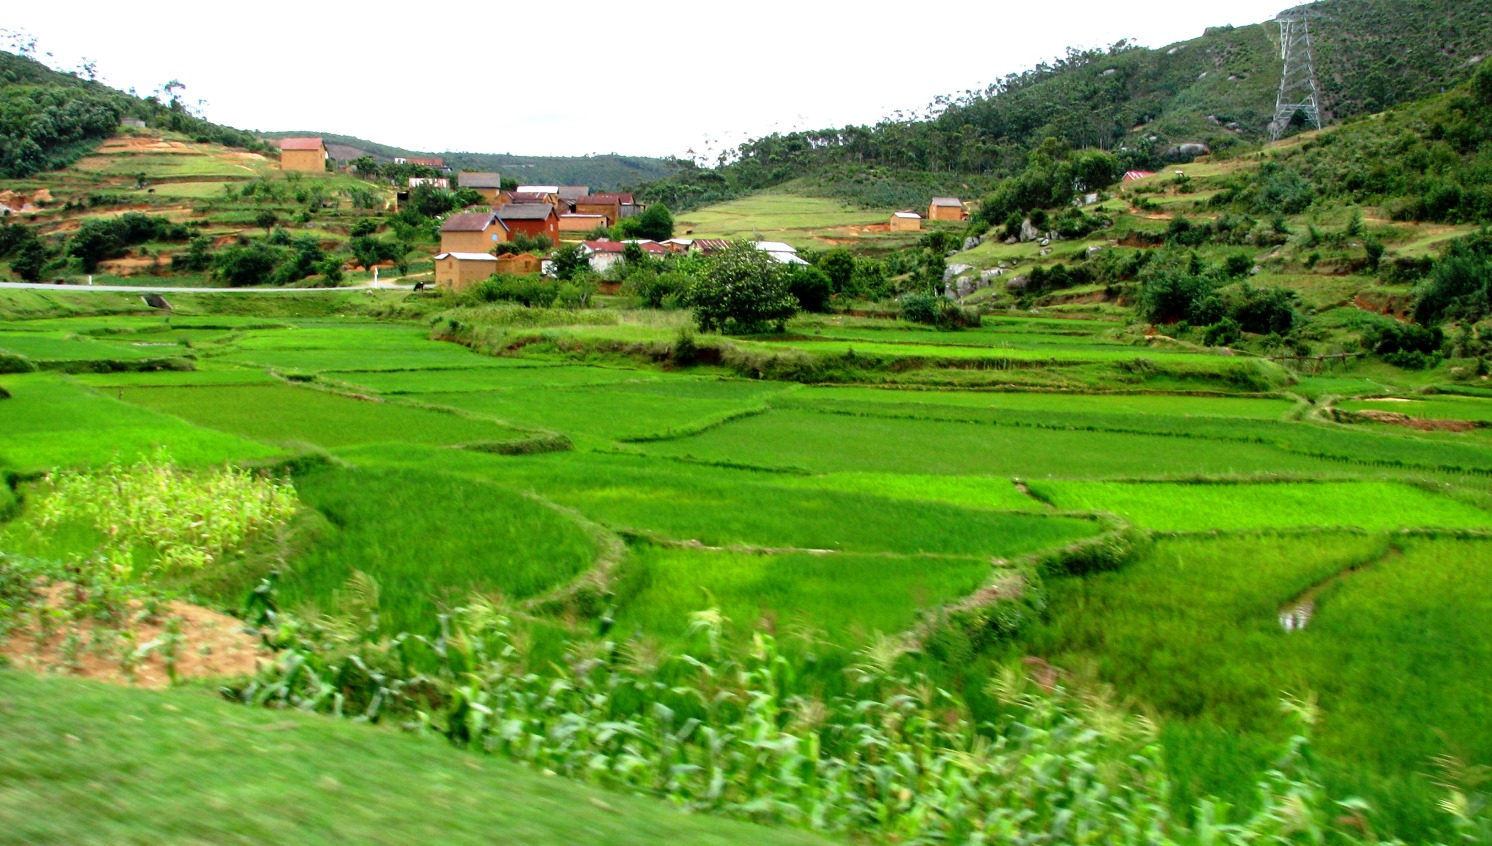 Rice paddy fields near Madagascar's